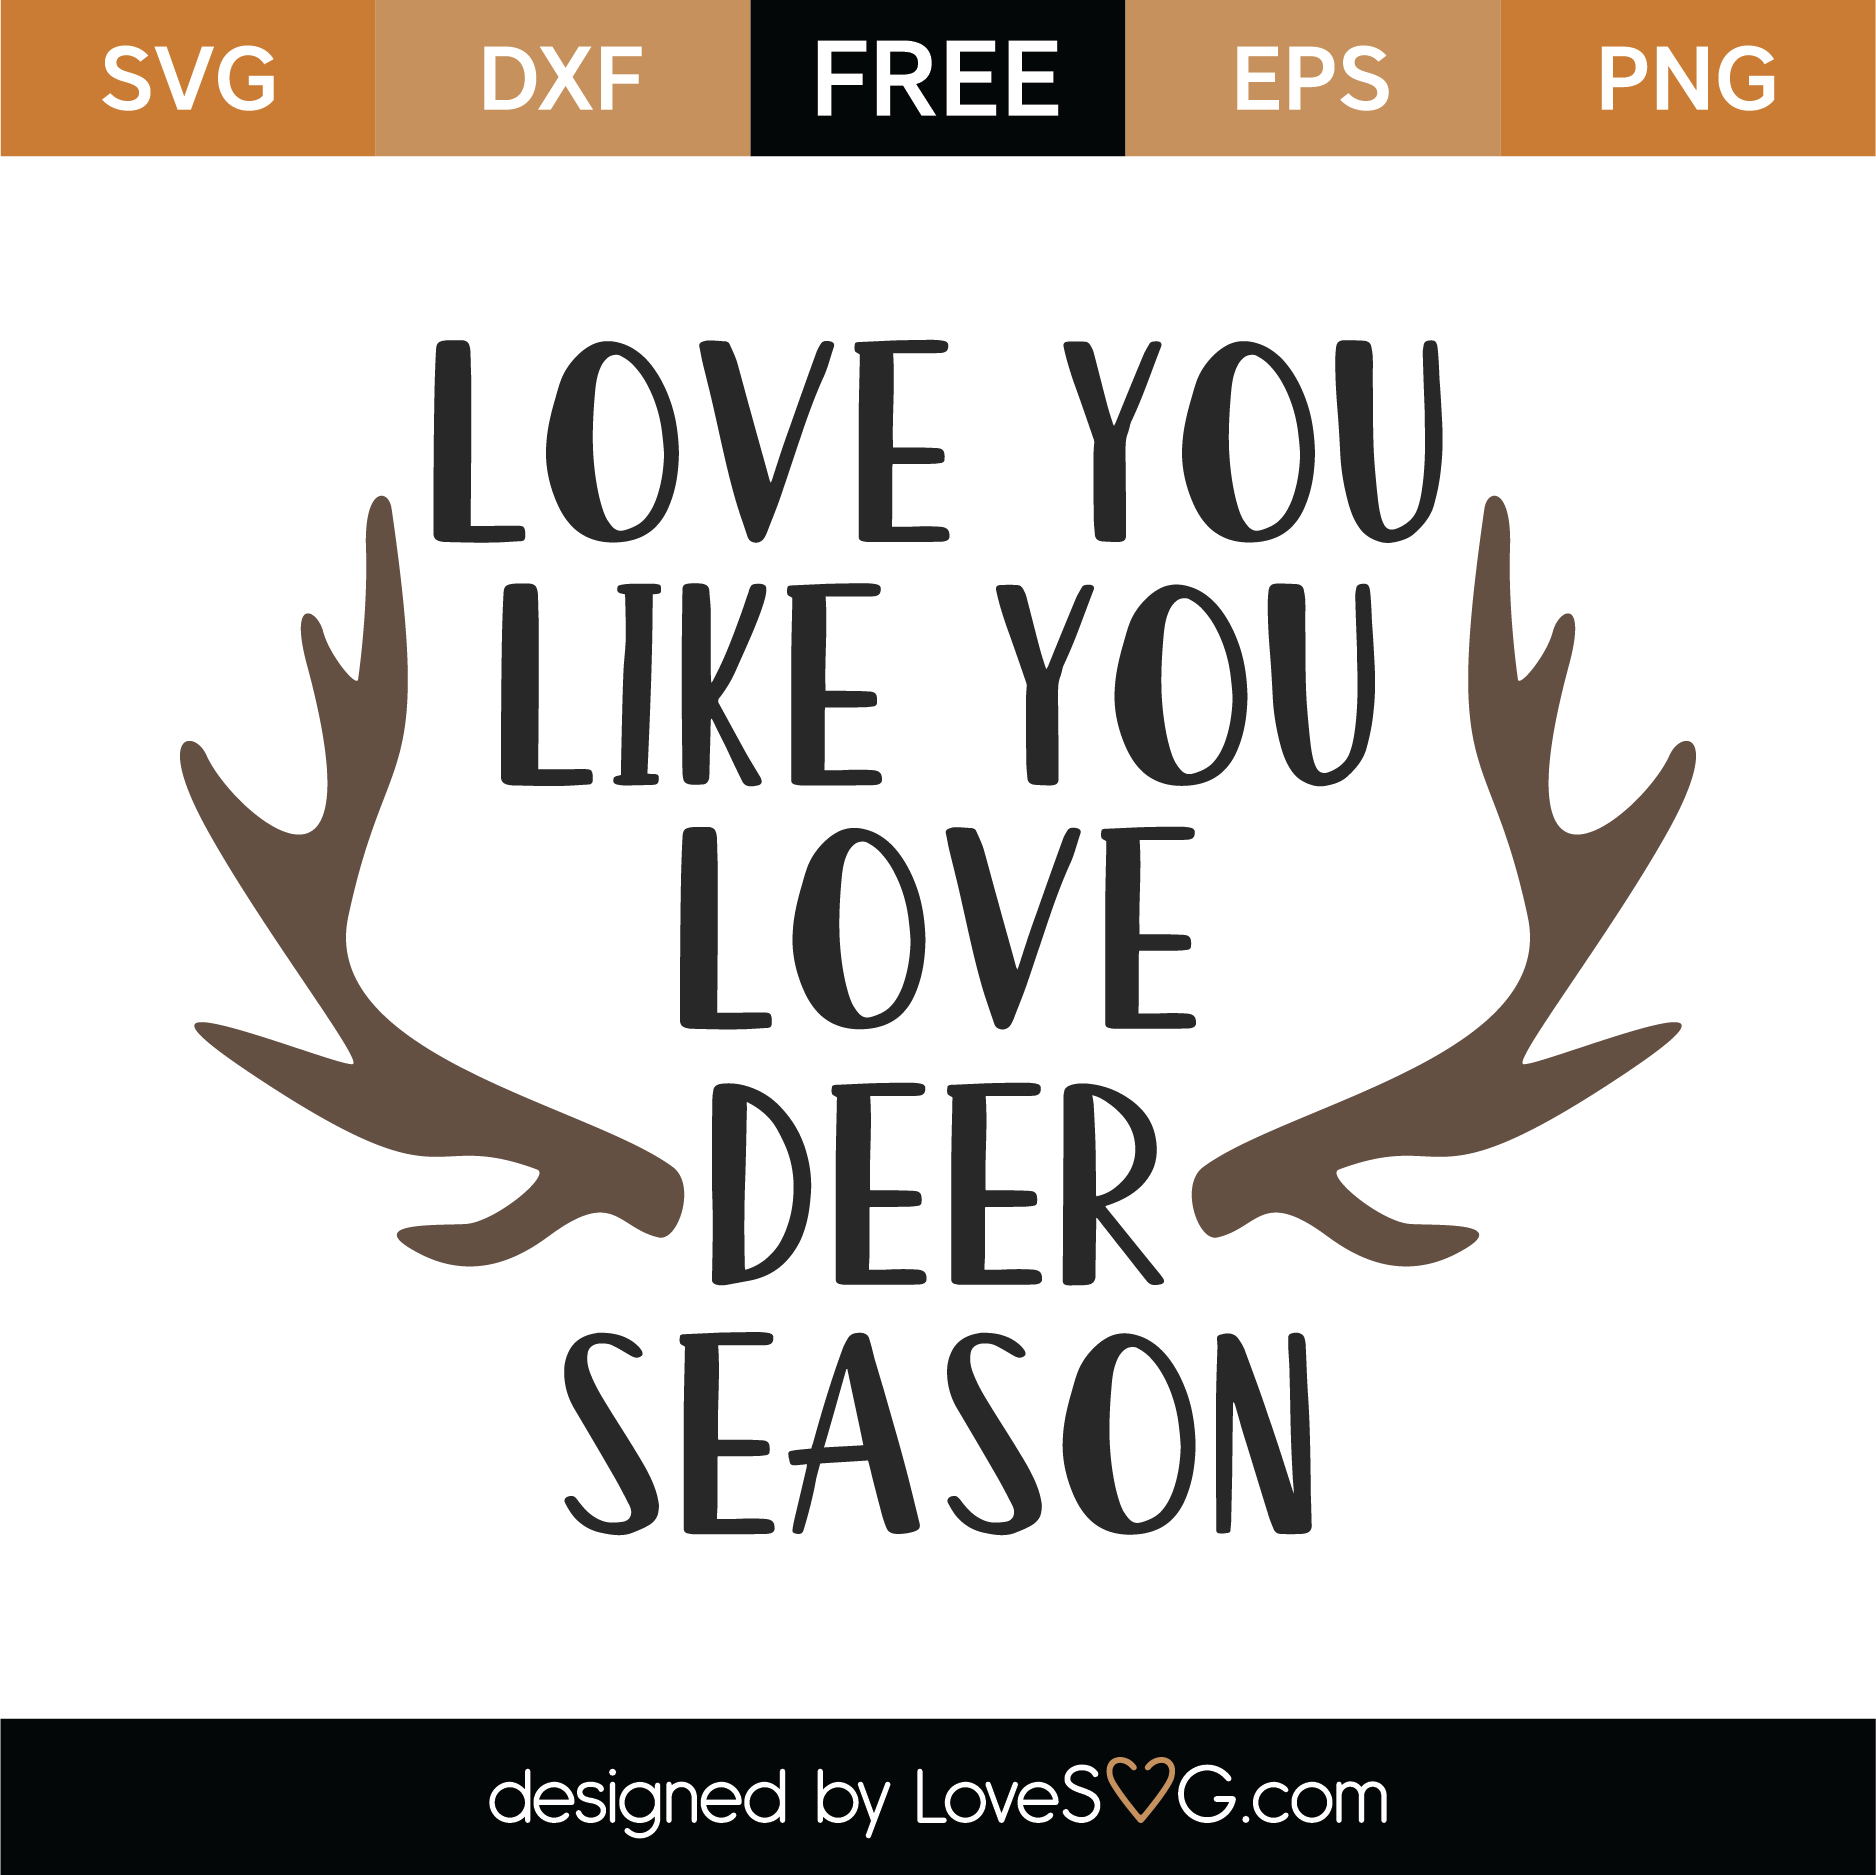 Download Free Love You Like You Love Deer Season SVG Cut File ...